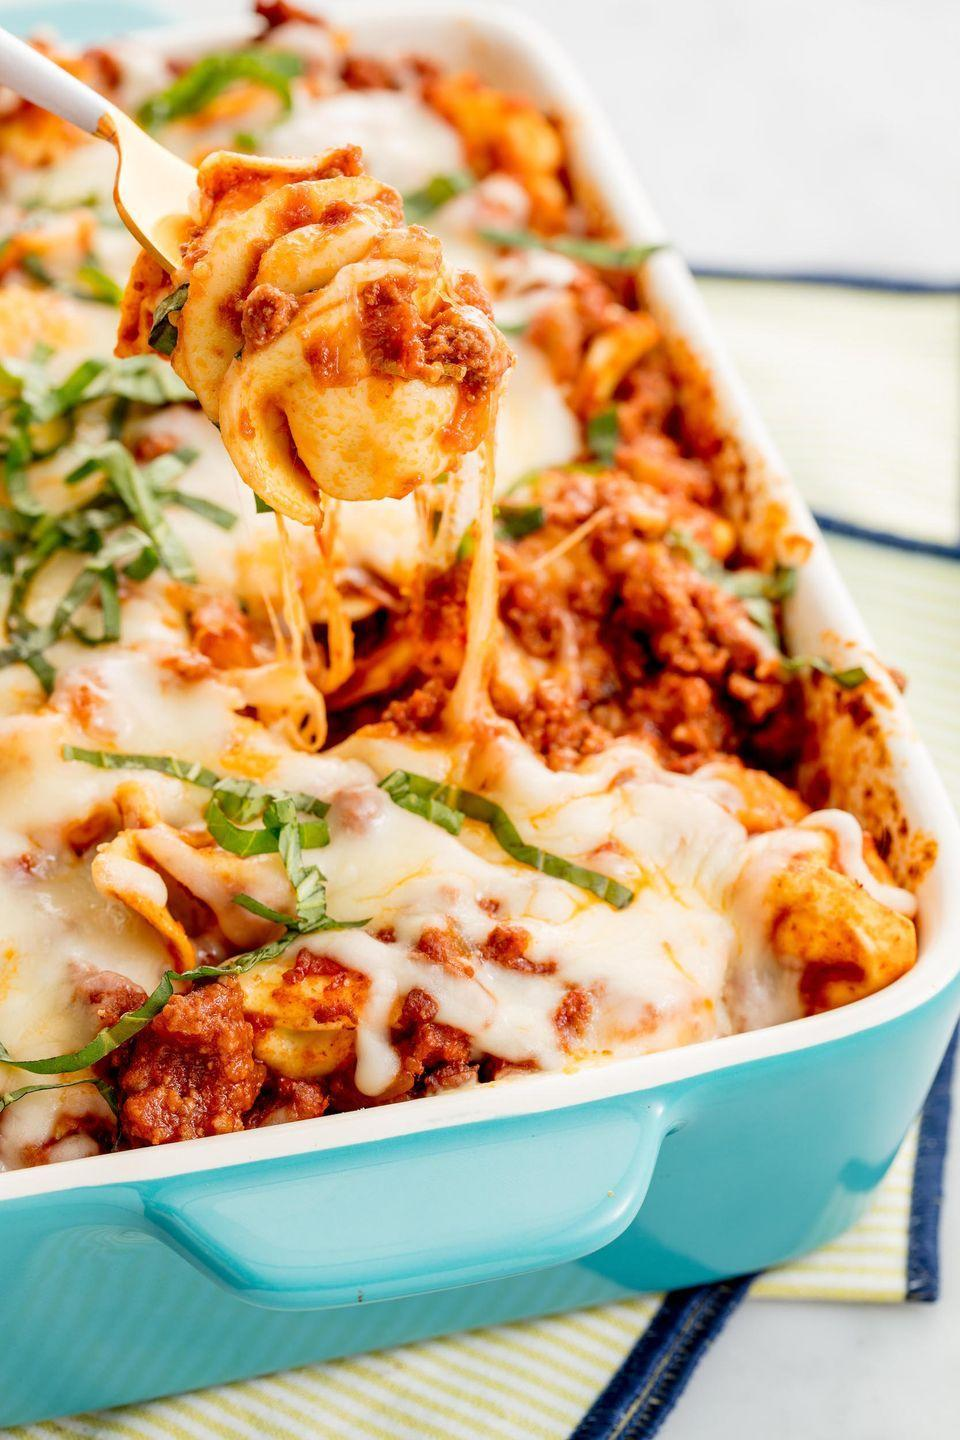 """<p>That cheese pull though 😍</p><p>Get the recipe from <a href=""""https://www.delish.com/cooking/recipe-ideas/recipes/a47130/bolognese-tortellini-bake-recipe/"""" rel=""""nofollow noopener"""" target=""""_blank"""" data-ylk=""""slk:Delish"""" class=""""link rapid-noclick-resp"""">Delish</a>.</p>"""